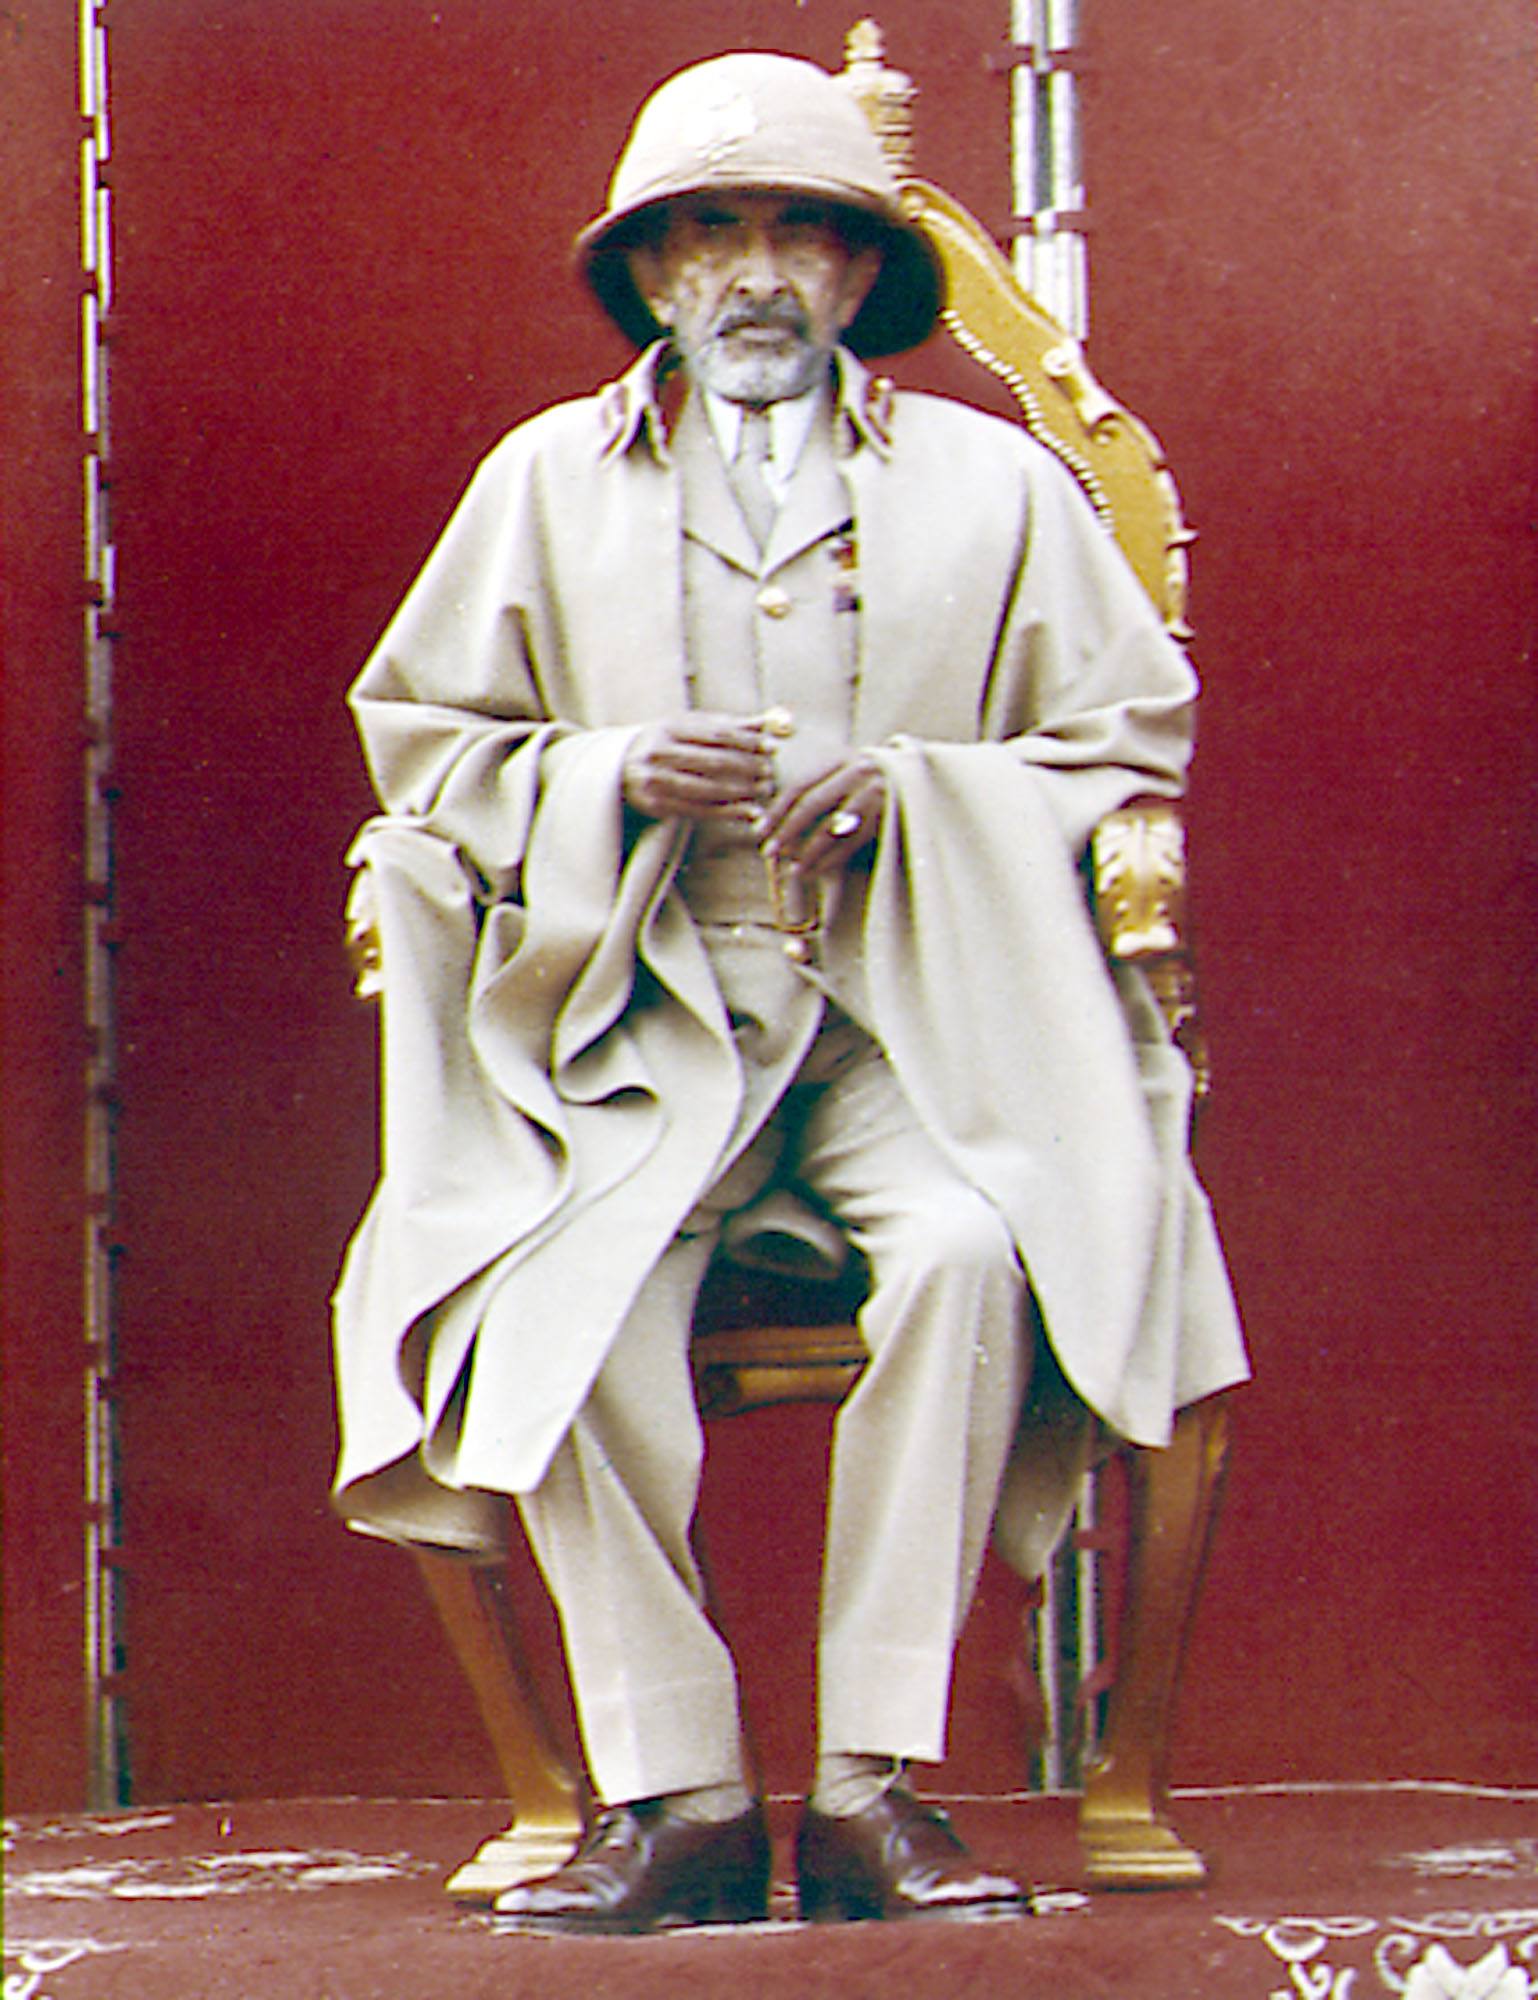 Haile Selassie, emperor of Ethiopia, attends a ceremony, March 02, 1974, to mark the battle of Adowa at St. George cathedral in Addis Ababa. The occasion marked the 78th. anniversary of a victory over Italian forces. The emperors public appearance followed a revolt by some units of Ethiopias armed forces.